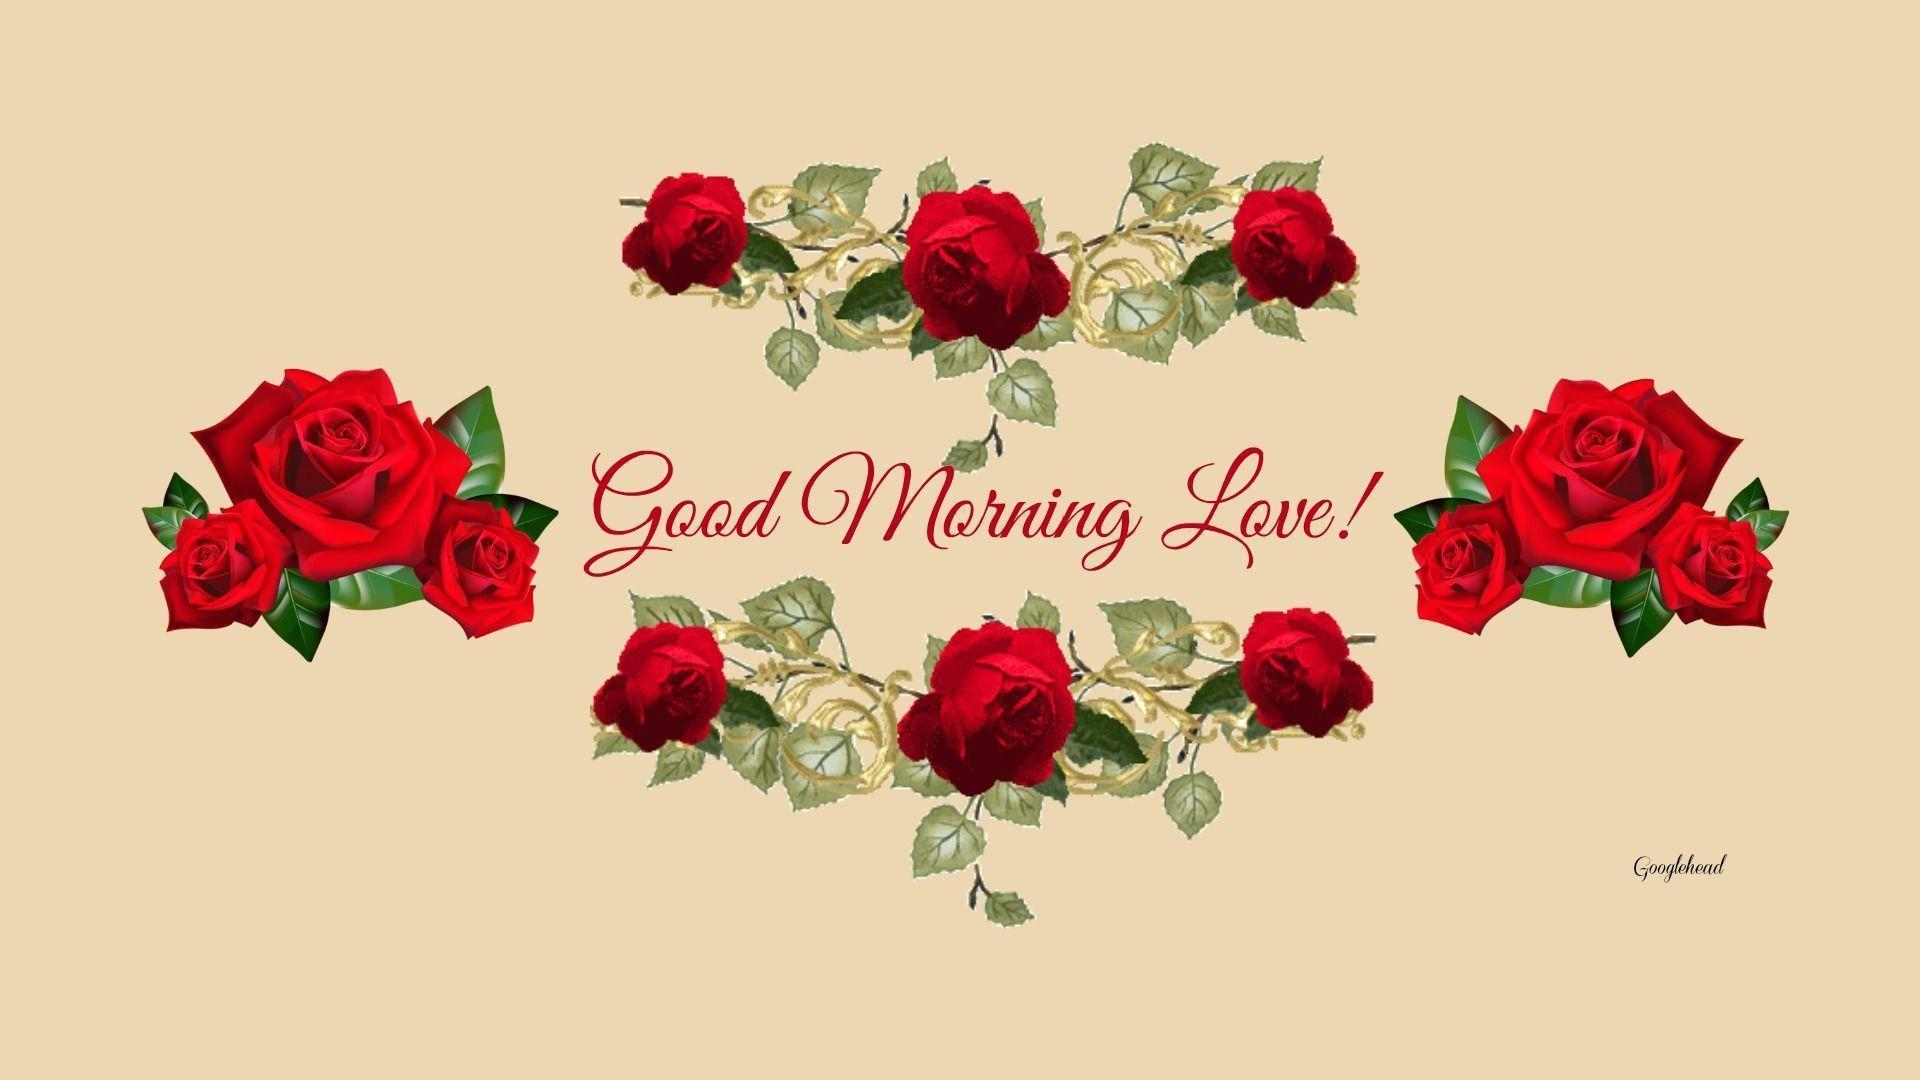 Love Good Morning Image Wallpaper : Wallpapers Good Morning Love - Wallpaper cave